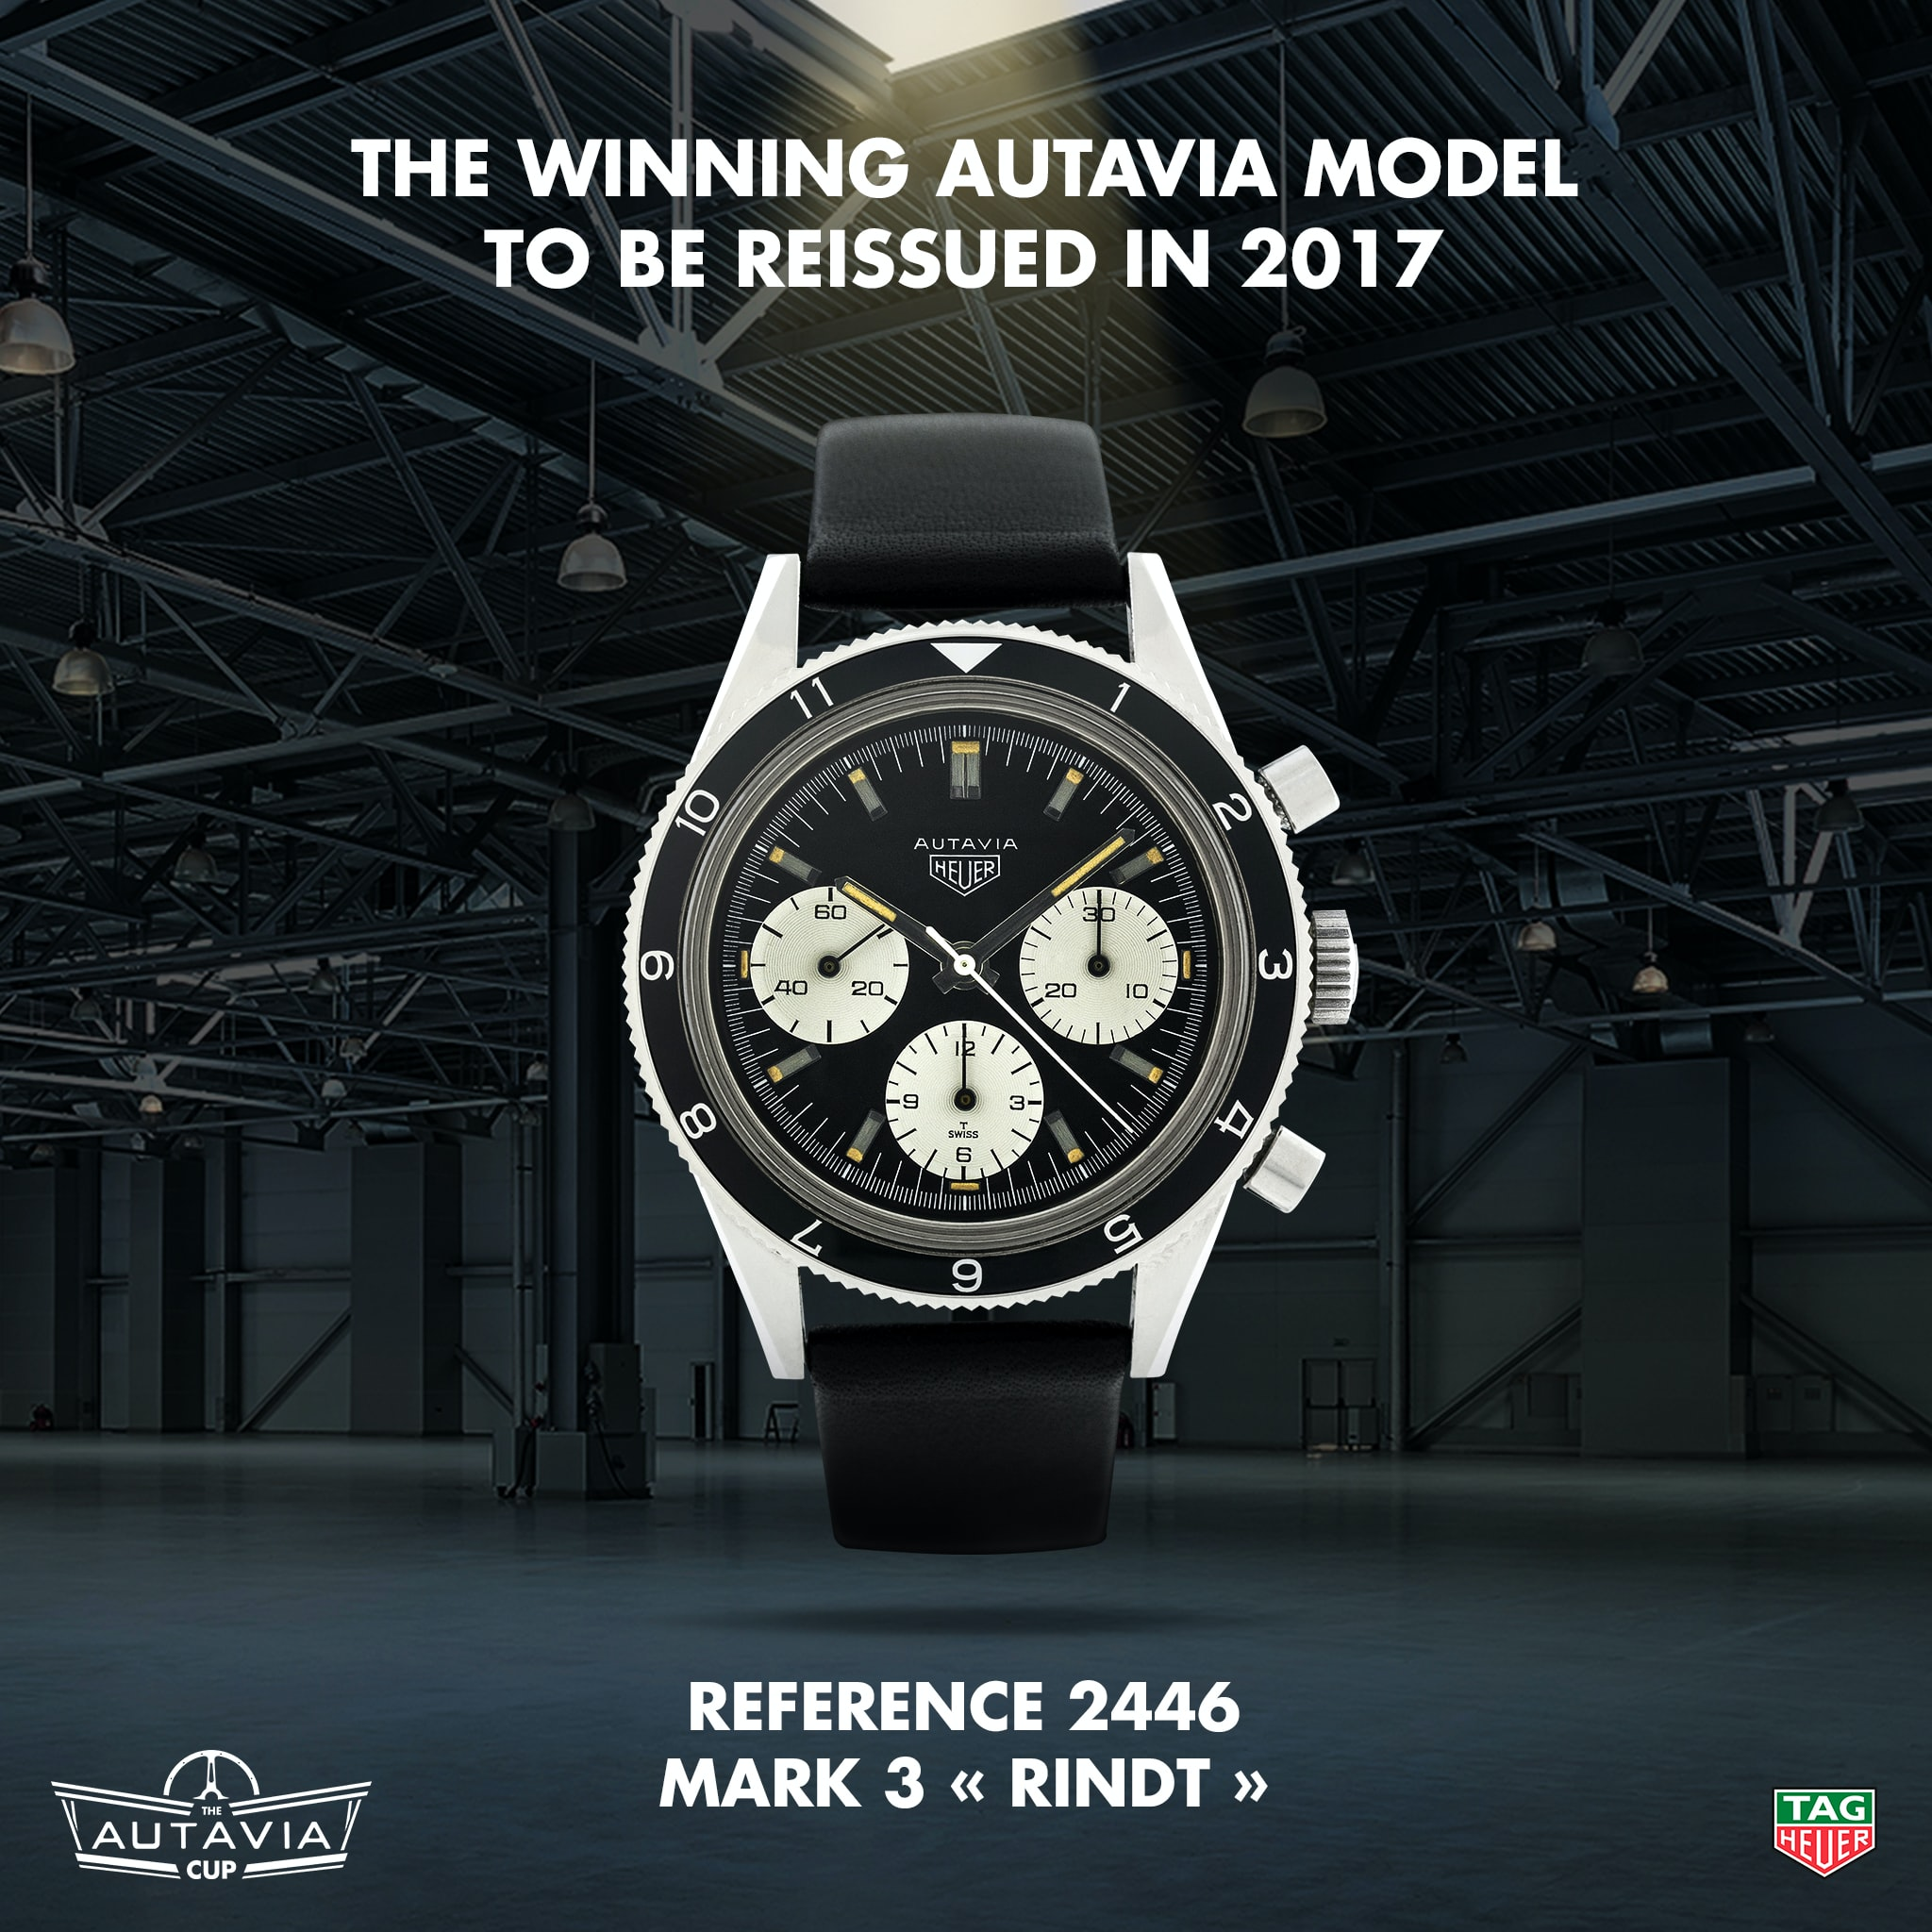 Breaking News: Announcing The Winner Of The TAG Heuer Autavia Cup, A Vintage Watch To Be Re-Made In 2017 Breaking News: Announcing The Winner Of The TAG Heuer Autavia Cup, A Vintage Watch To Be Re-Made In 2017 Autavia Cup Winner The Rindt Ref 2446 Mark 3 HD